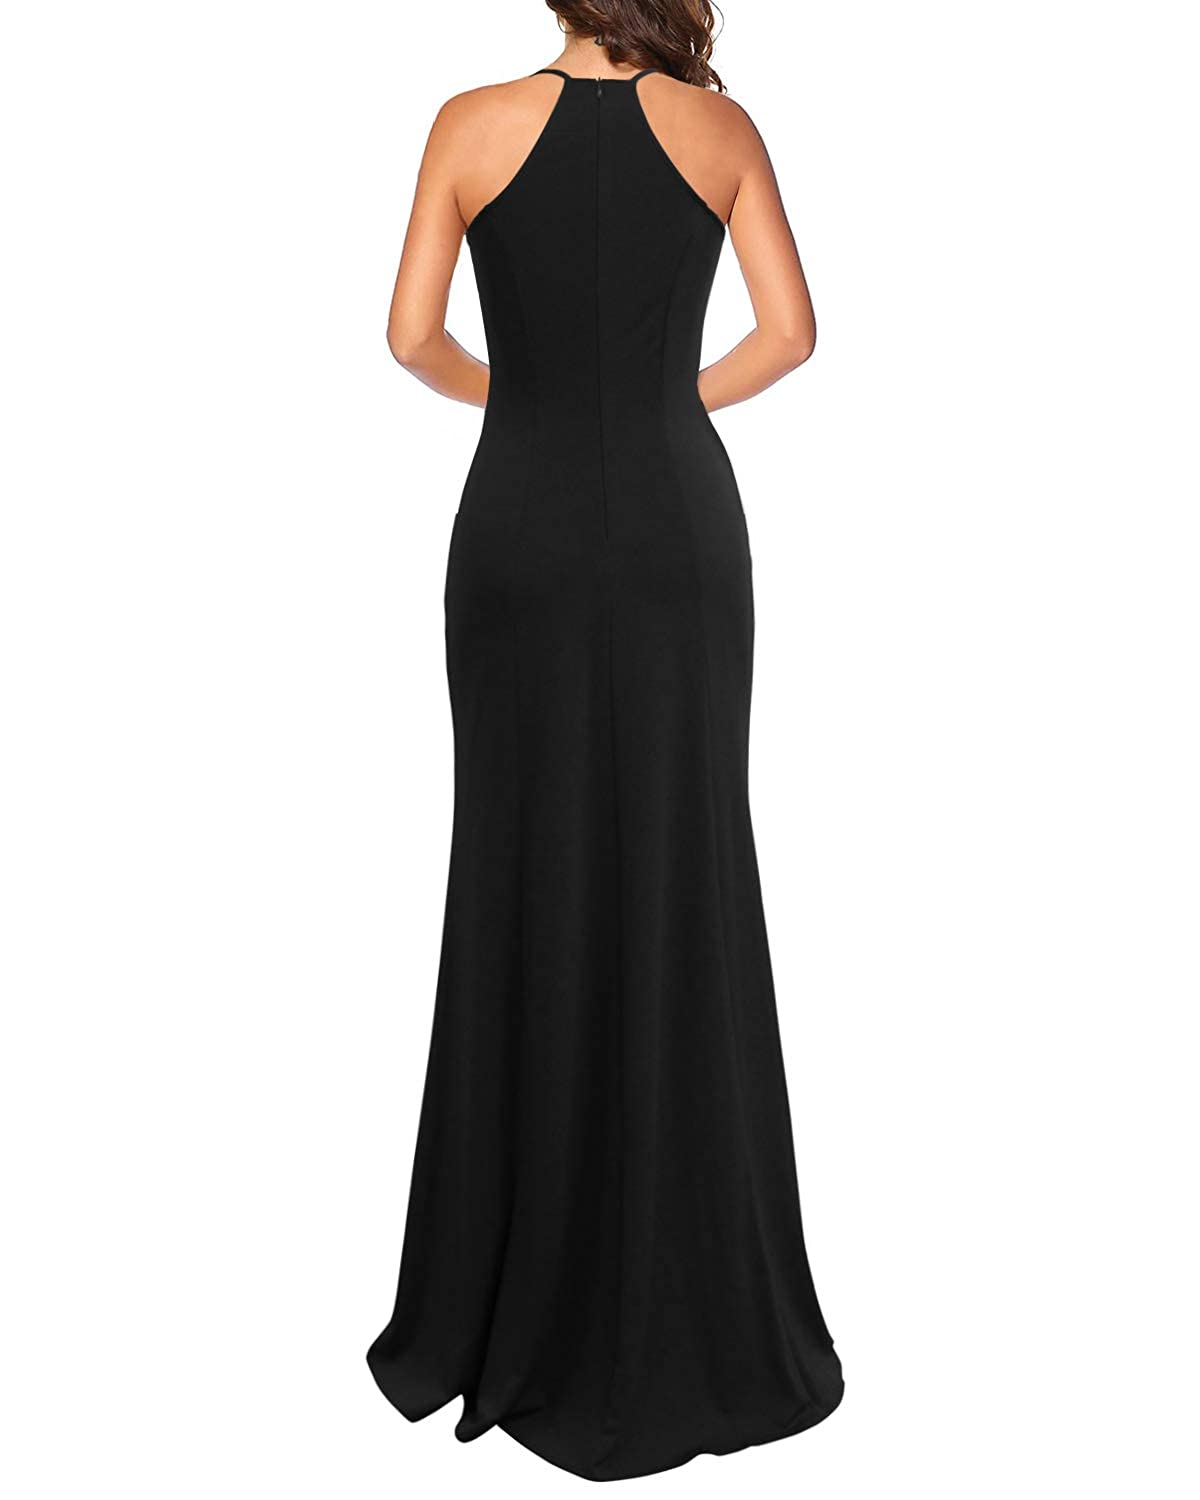 4d716bf1c4af Lyrur Women's Sexy Spaghetti Straps Slit Formal Long Bridesmaid Maxi Party  Evening Dress Mermaid Prom Gown at Amazon Women's Clothing store: